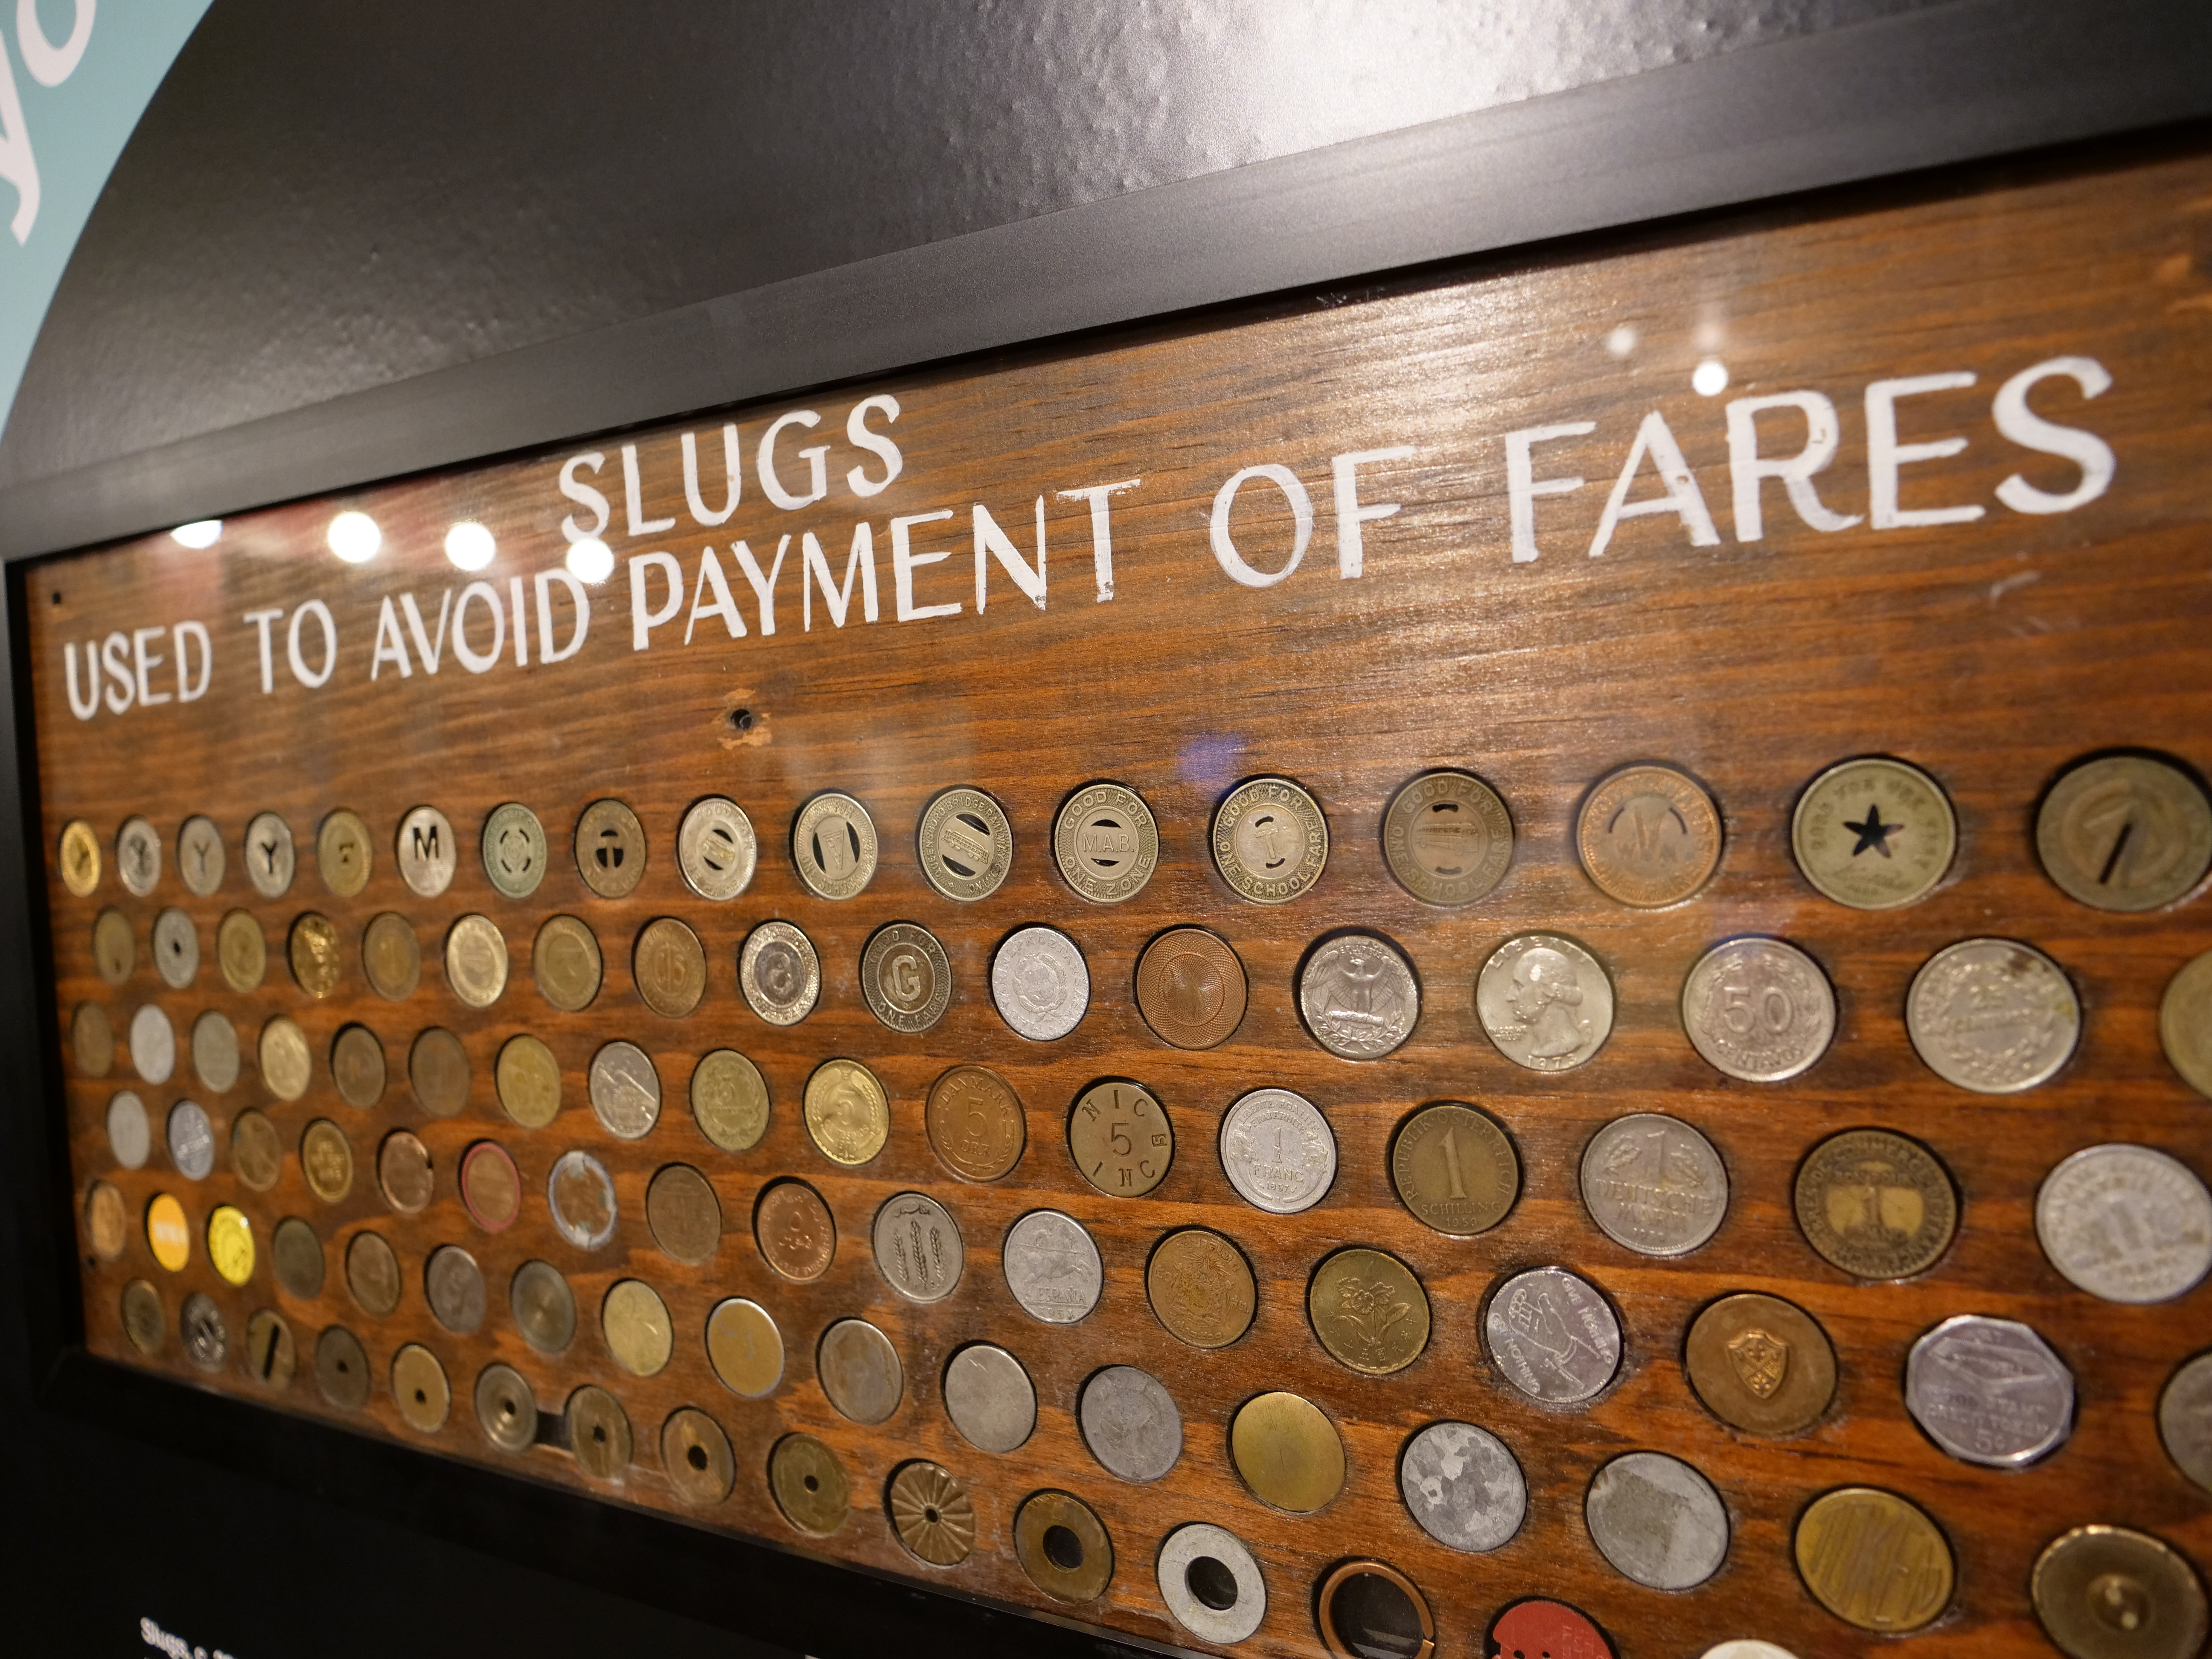 NYC Token Slugs used to avoid payment of fares on NYC MTA subway